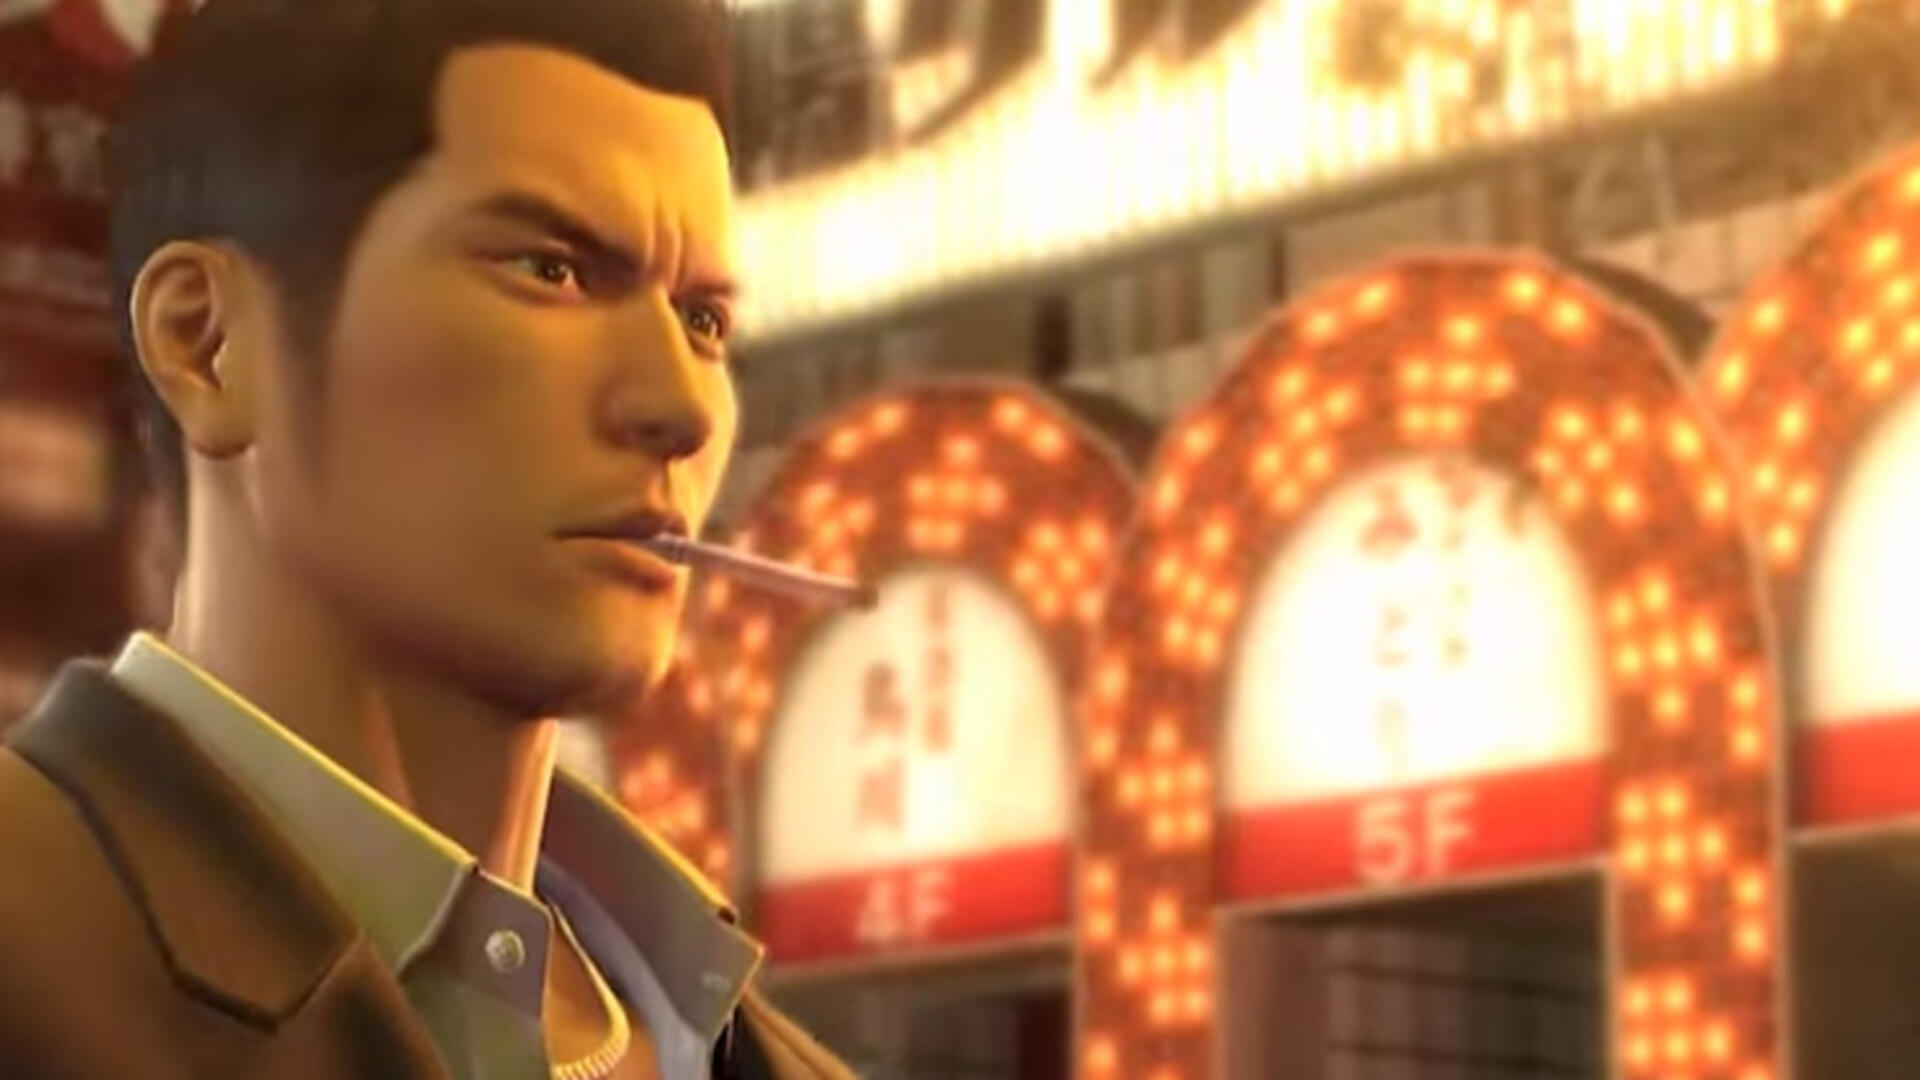 Yakuza 0 Patch 1 on Steam Rolled Back After Players Report Crashing Problems